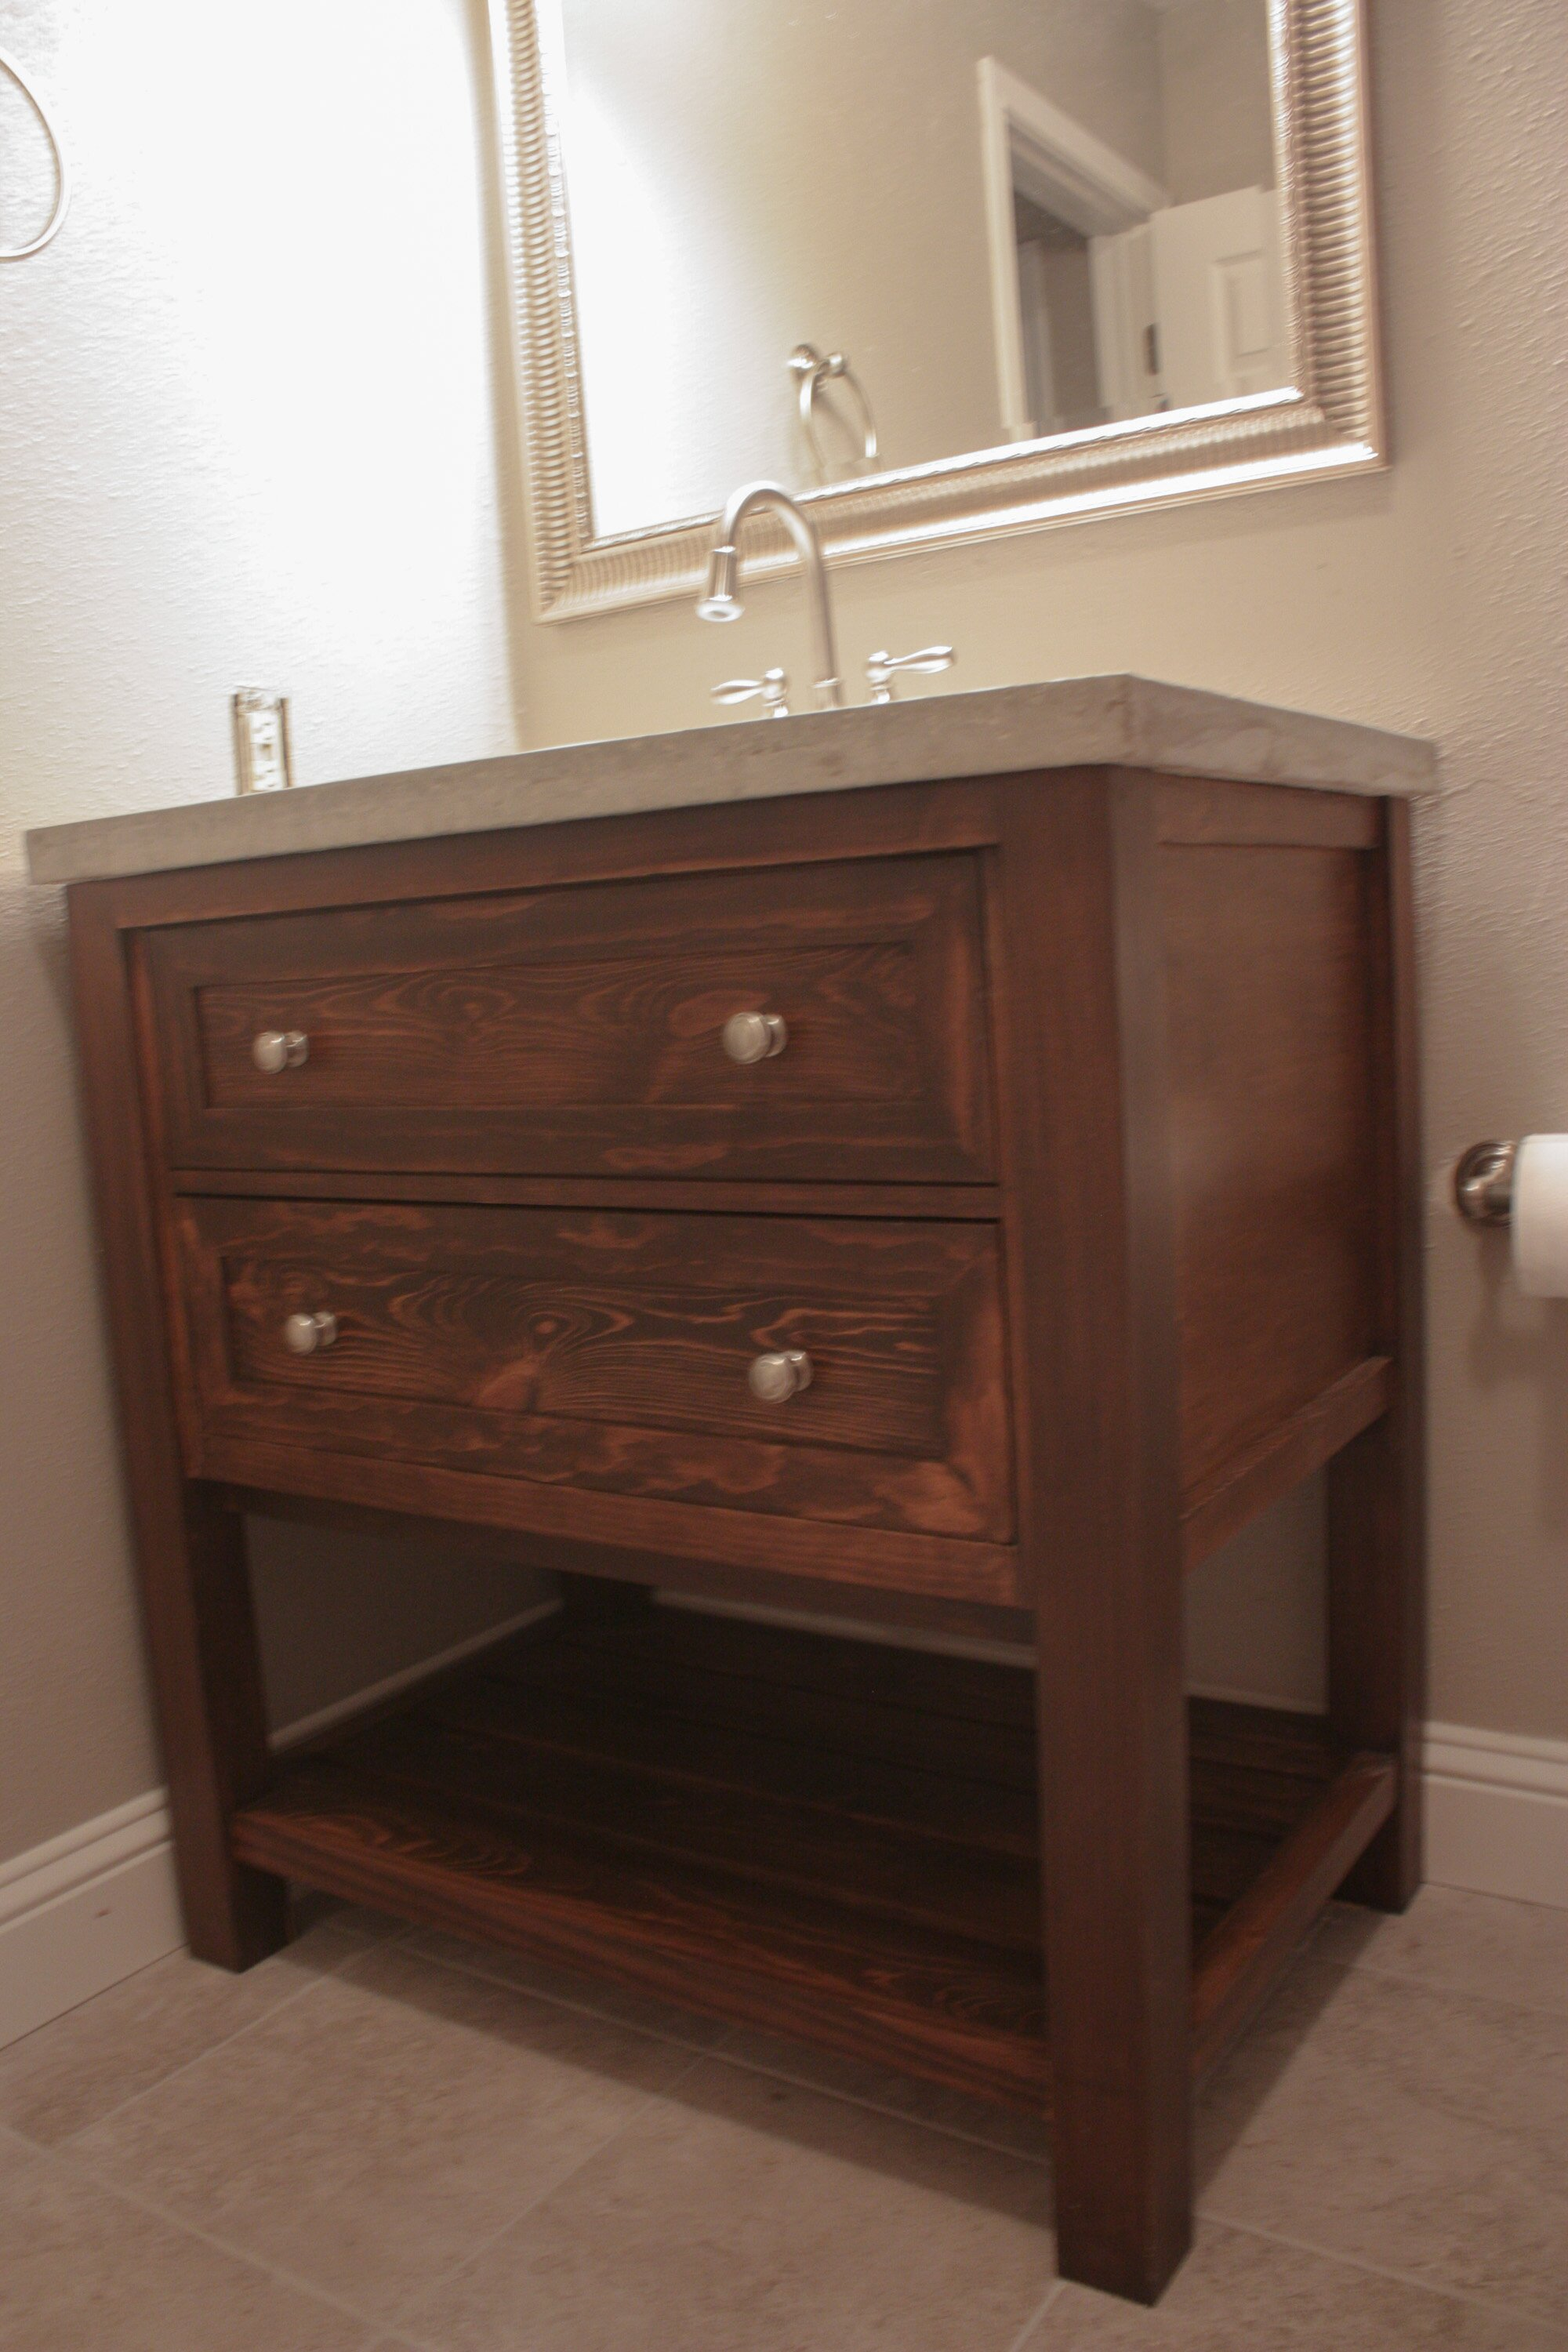 Restoration Hardware Bathroom Vanity Sale | Pottery Barn Vanity | Restoration Hardware Sink Vanity